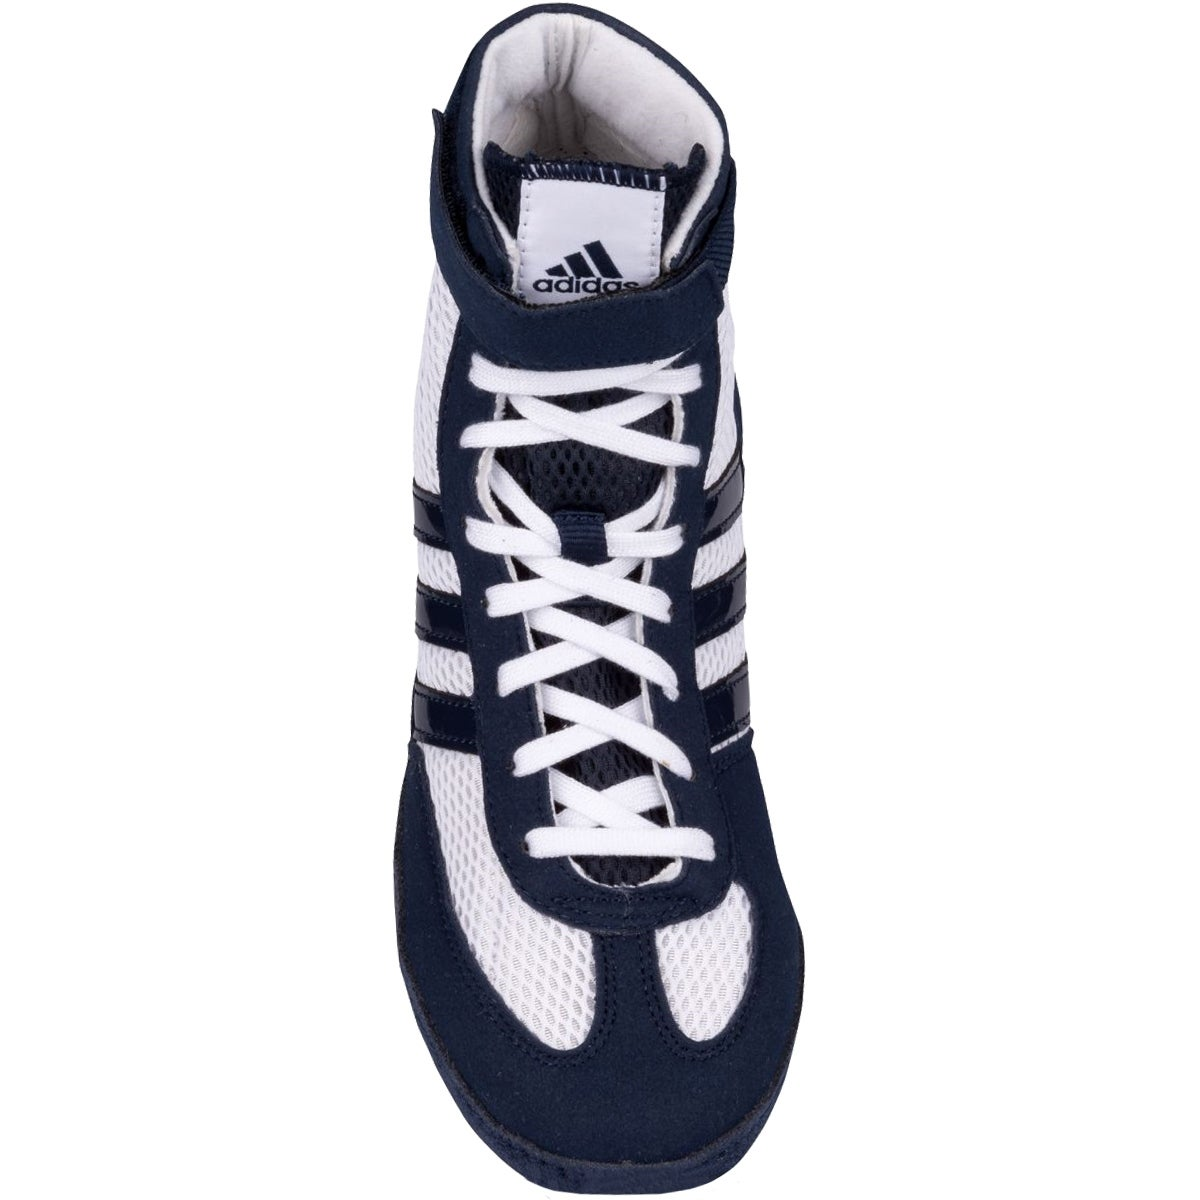 9f113f87dd758f Shop Adidas Combat Speed 4 Youth Wrestling Shoes - White Navy - Free  Shipping Today - Overstock - 16629704